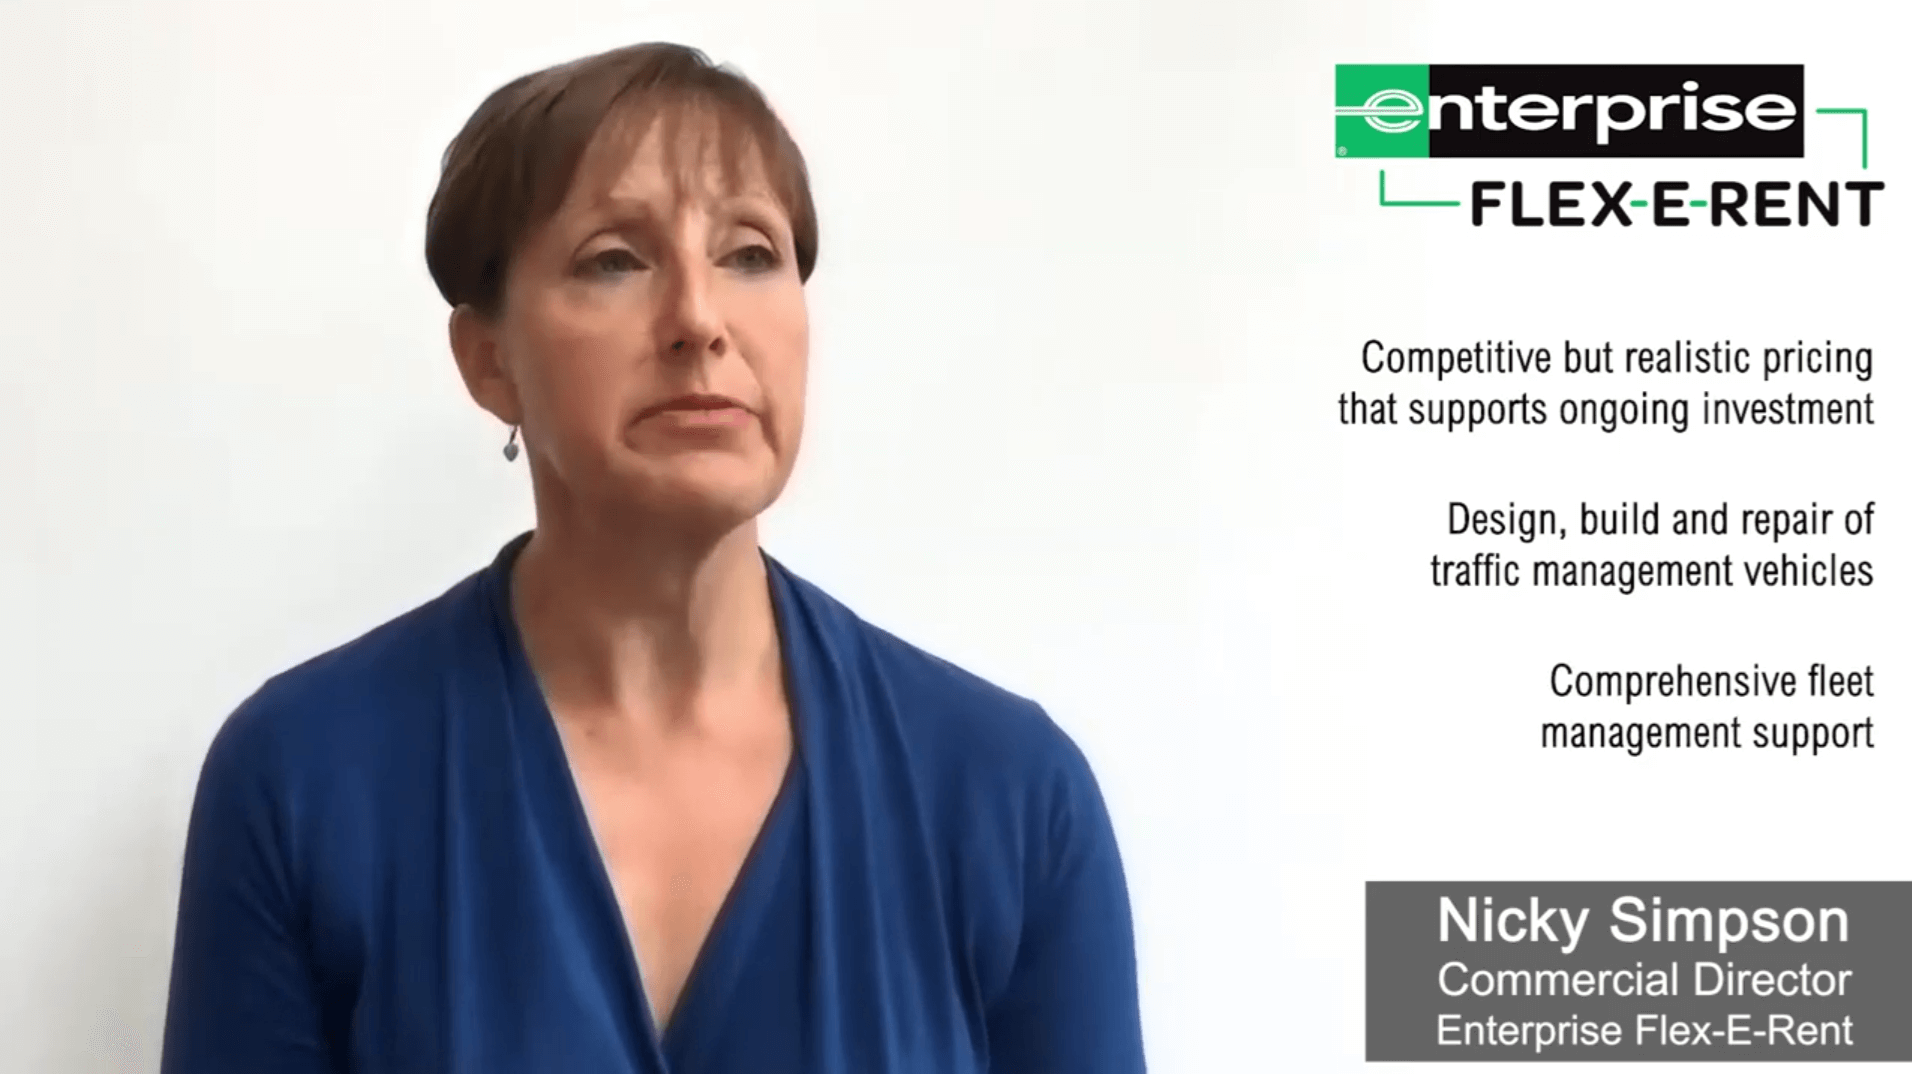 Nicky Simpson, Commercial Director at Enterprise Flex-E-Rent, discusses COVID-19 and the current climate